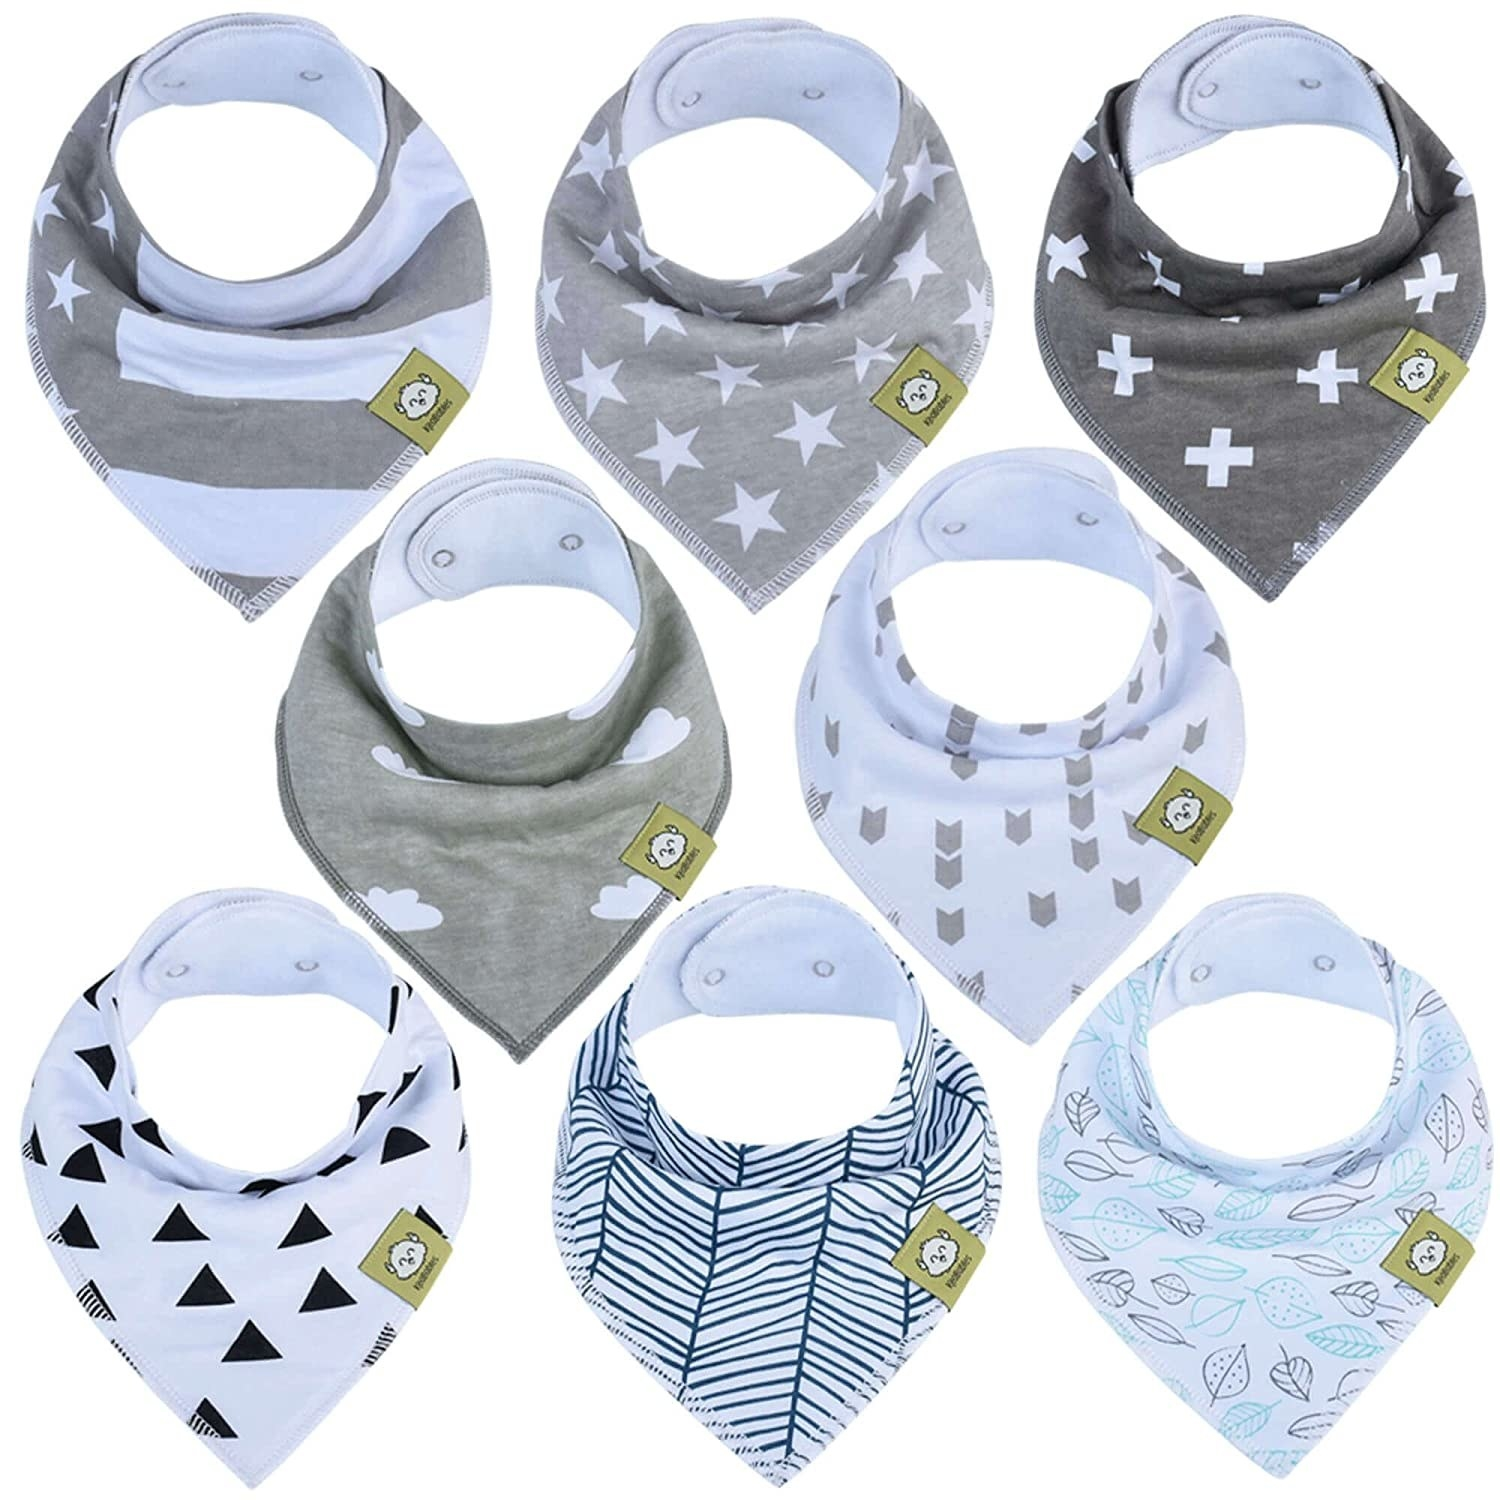 The eight bibs in different patterns